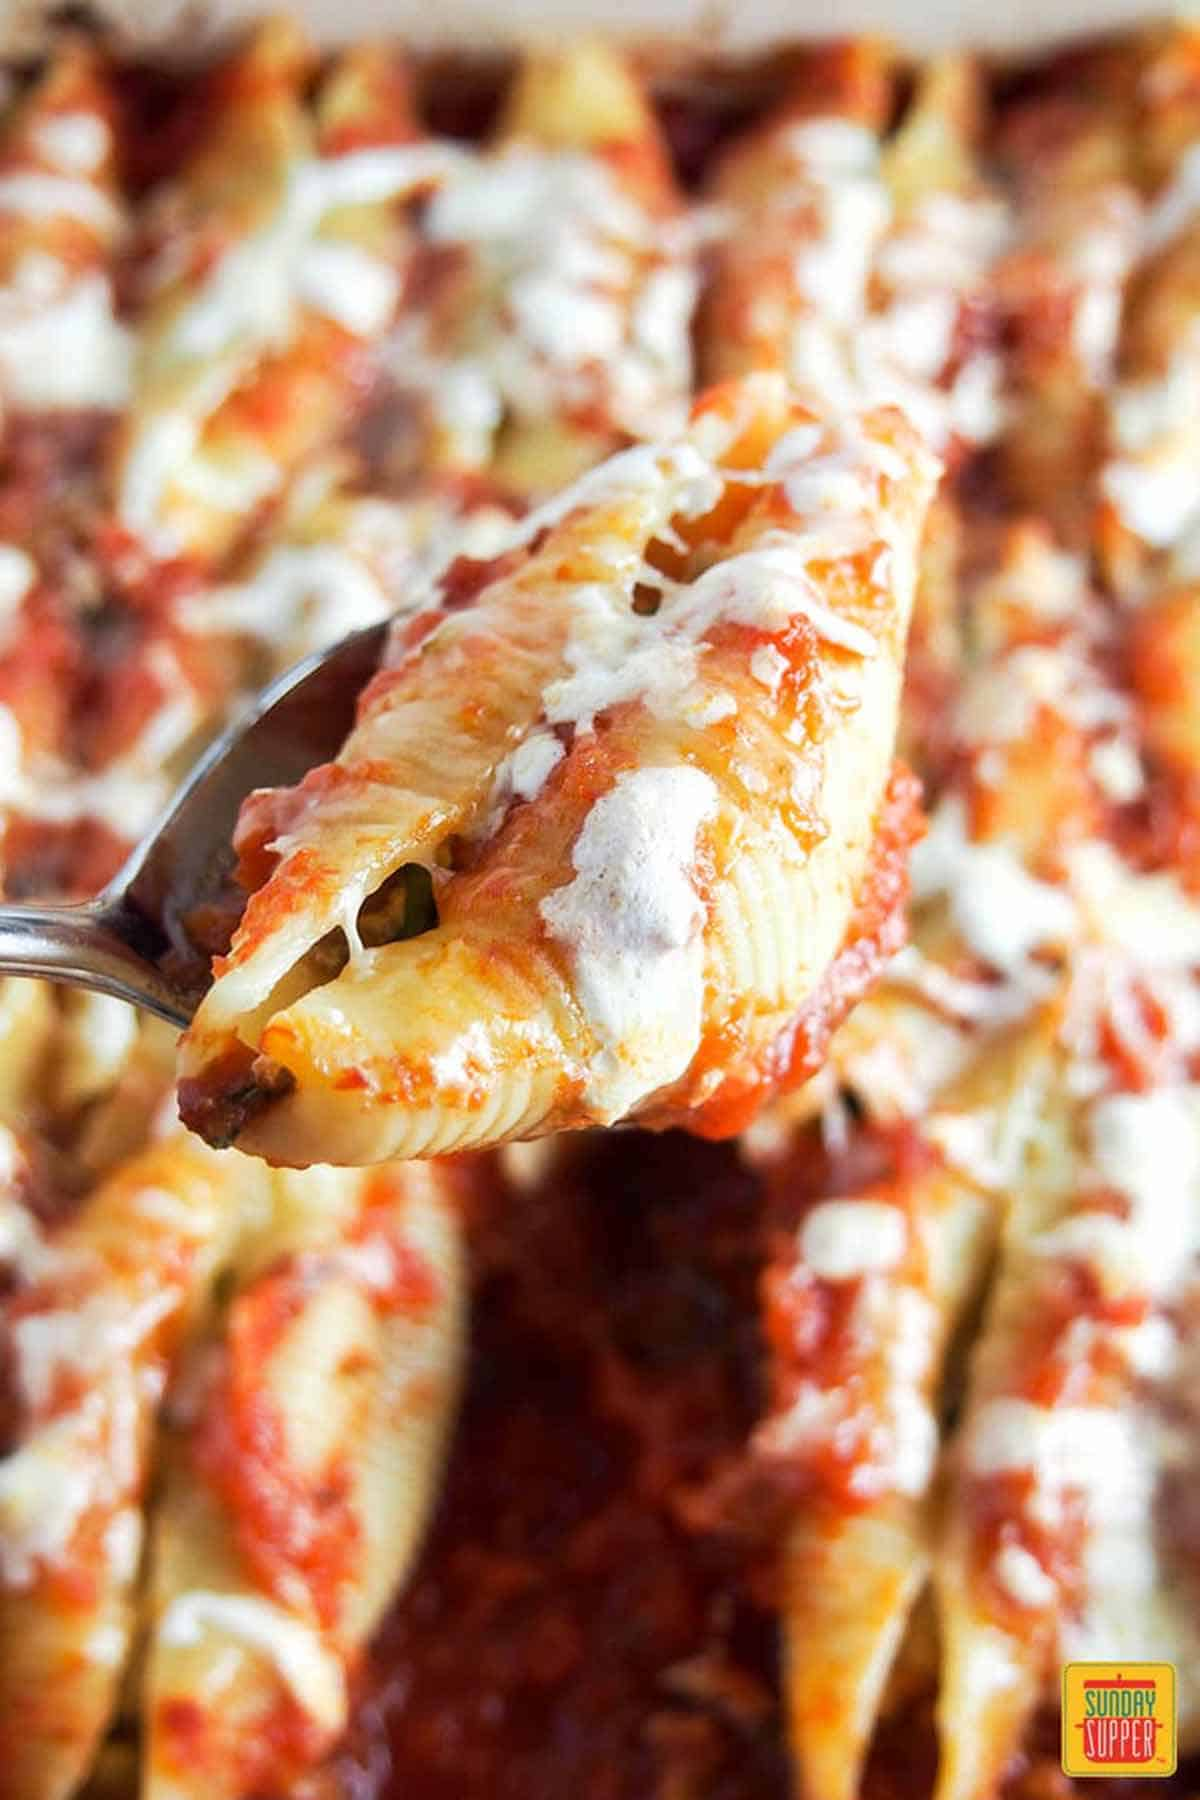 Pulled pork stuffed shells in the baking dish